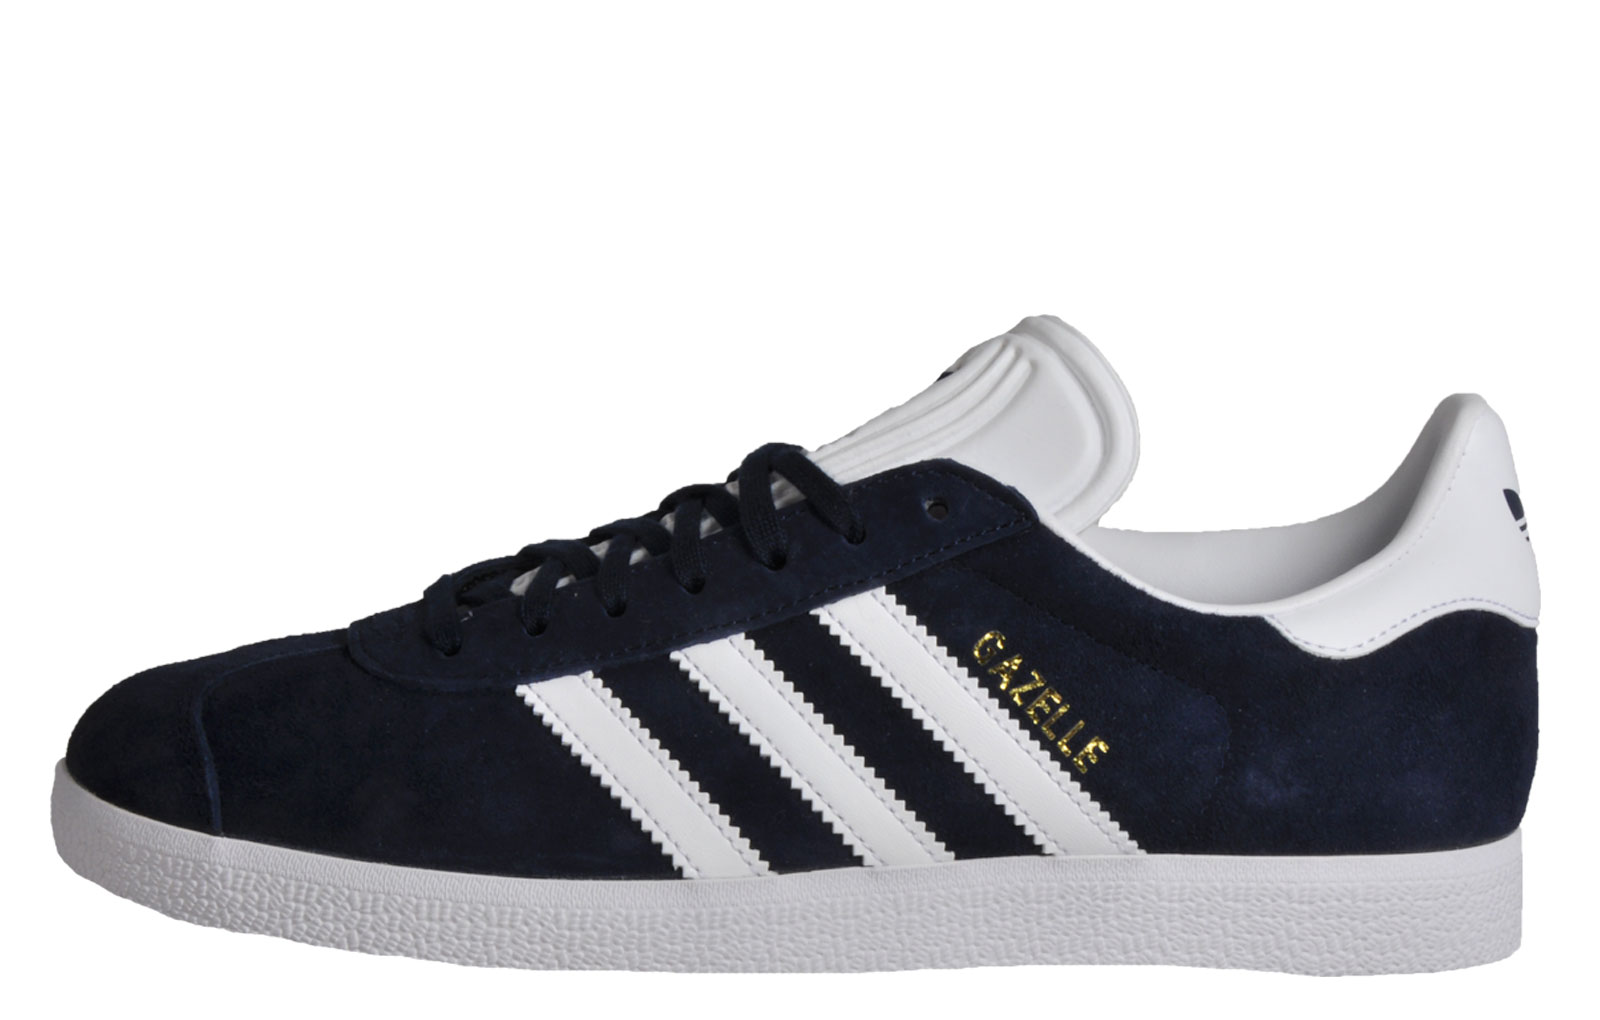 7362f24a7900b9 Adidas Originals Gazelle Men s Classic Casual Retro Vintage Trainers Navy